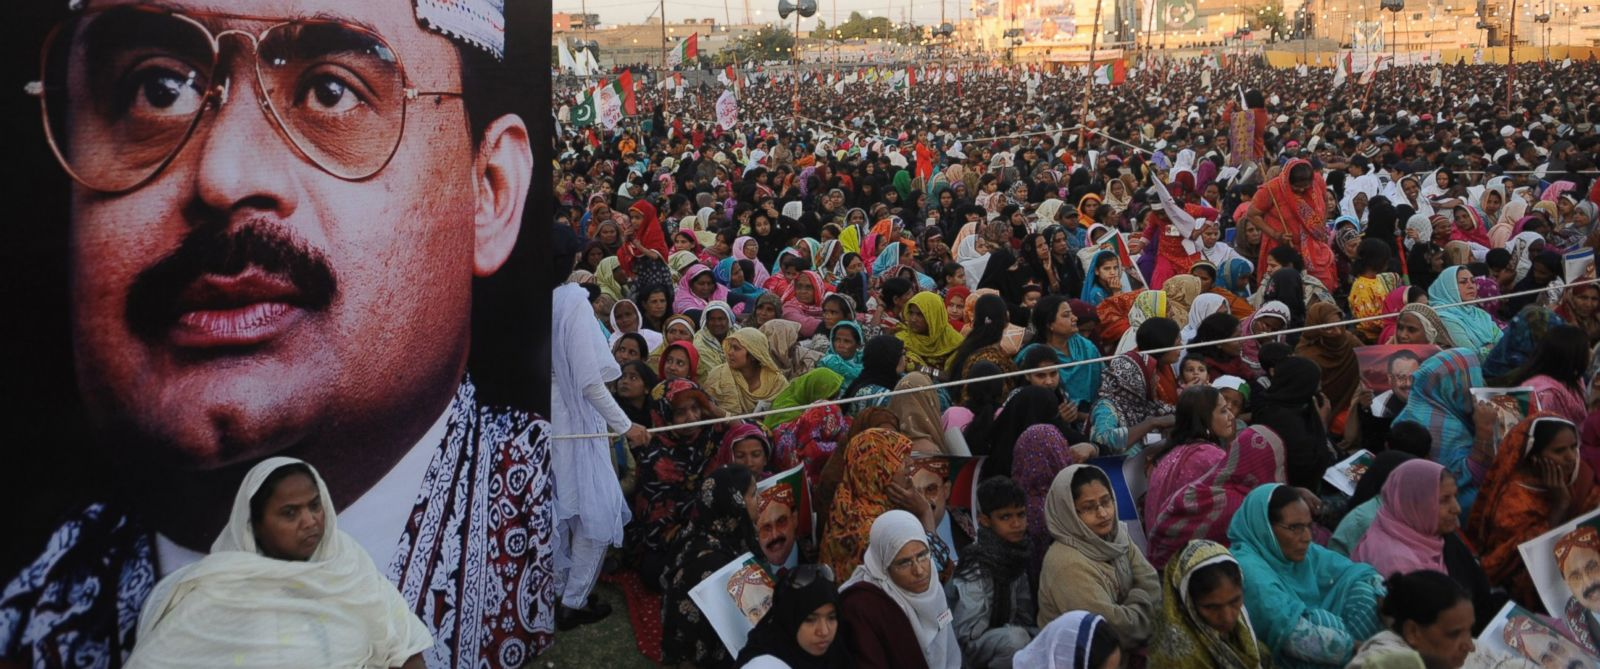 "PHOTO: Activists and supporters of Muttahida Qaumi Movement (MQM) gather during a ""Qaumi Yakjehti Jalsa"", a national unity meeting rally in Karachi, Pakistan, Jan. 30, 2011."